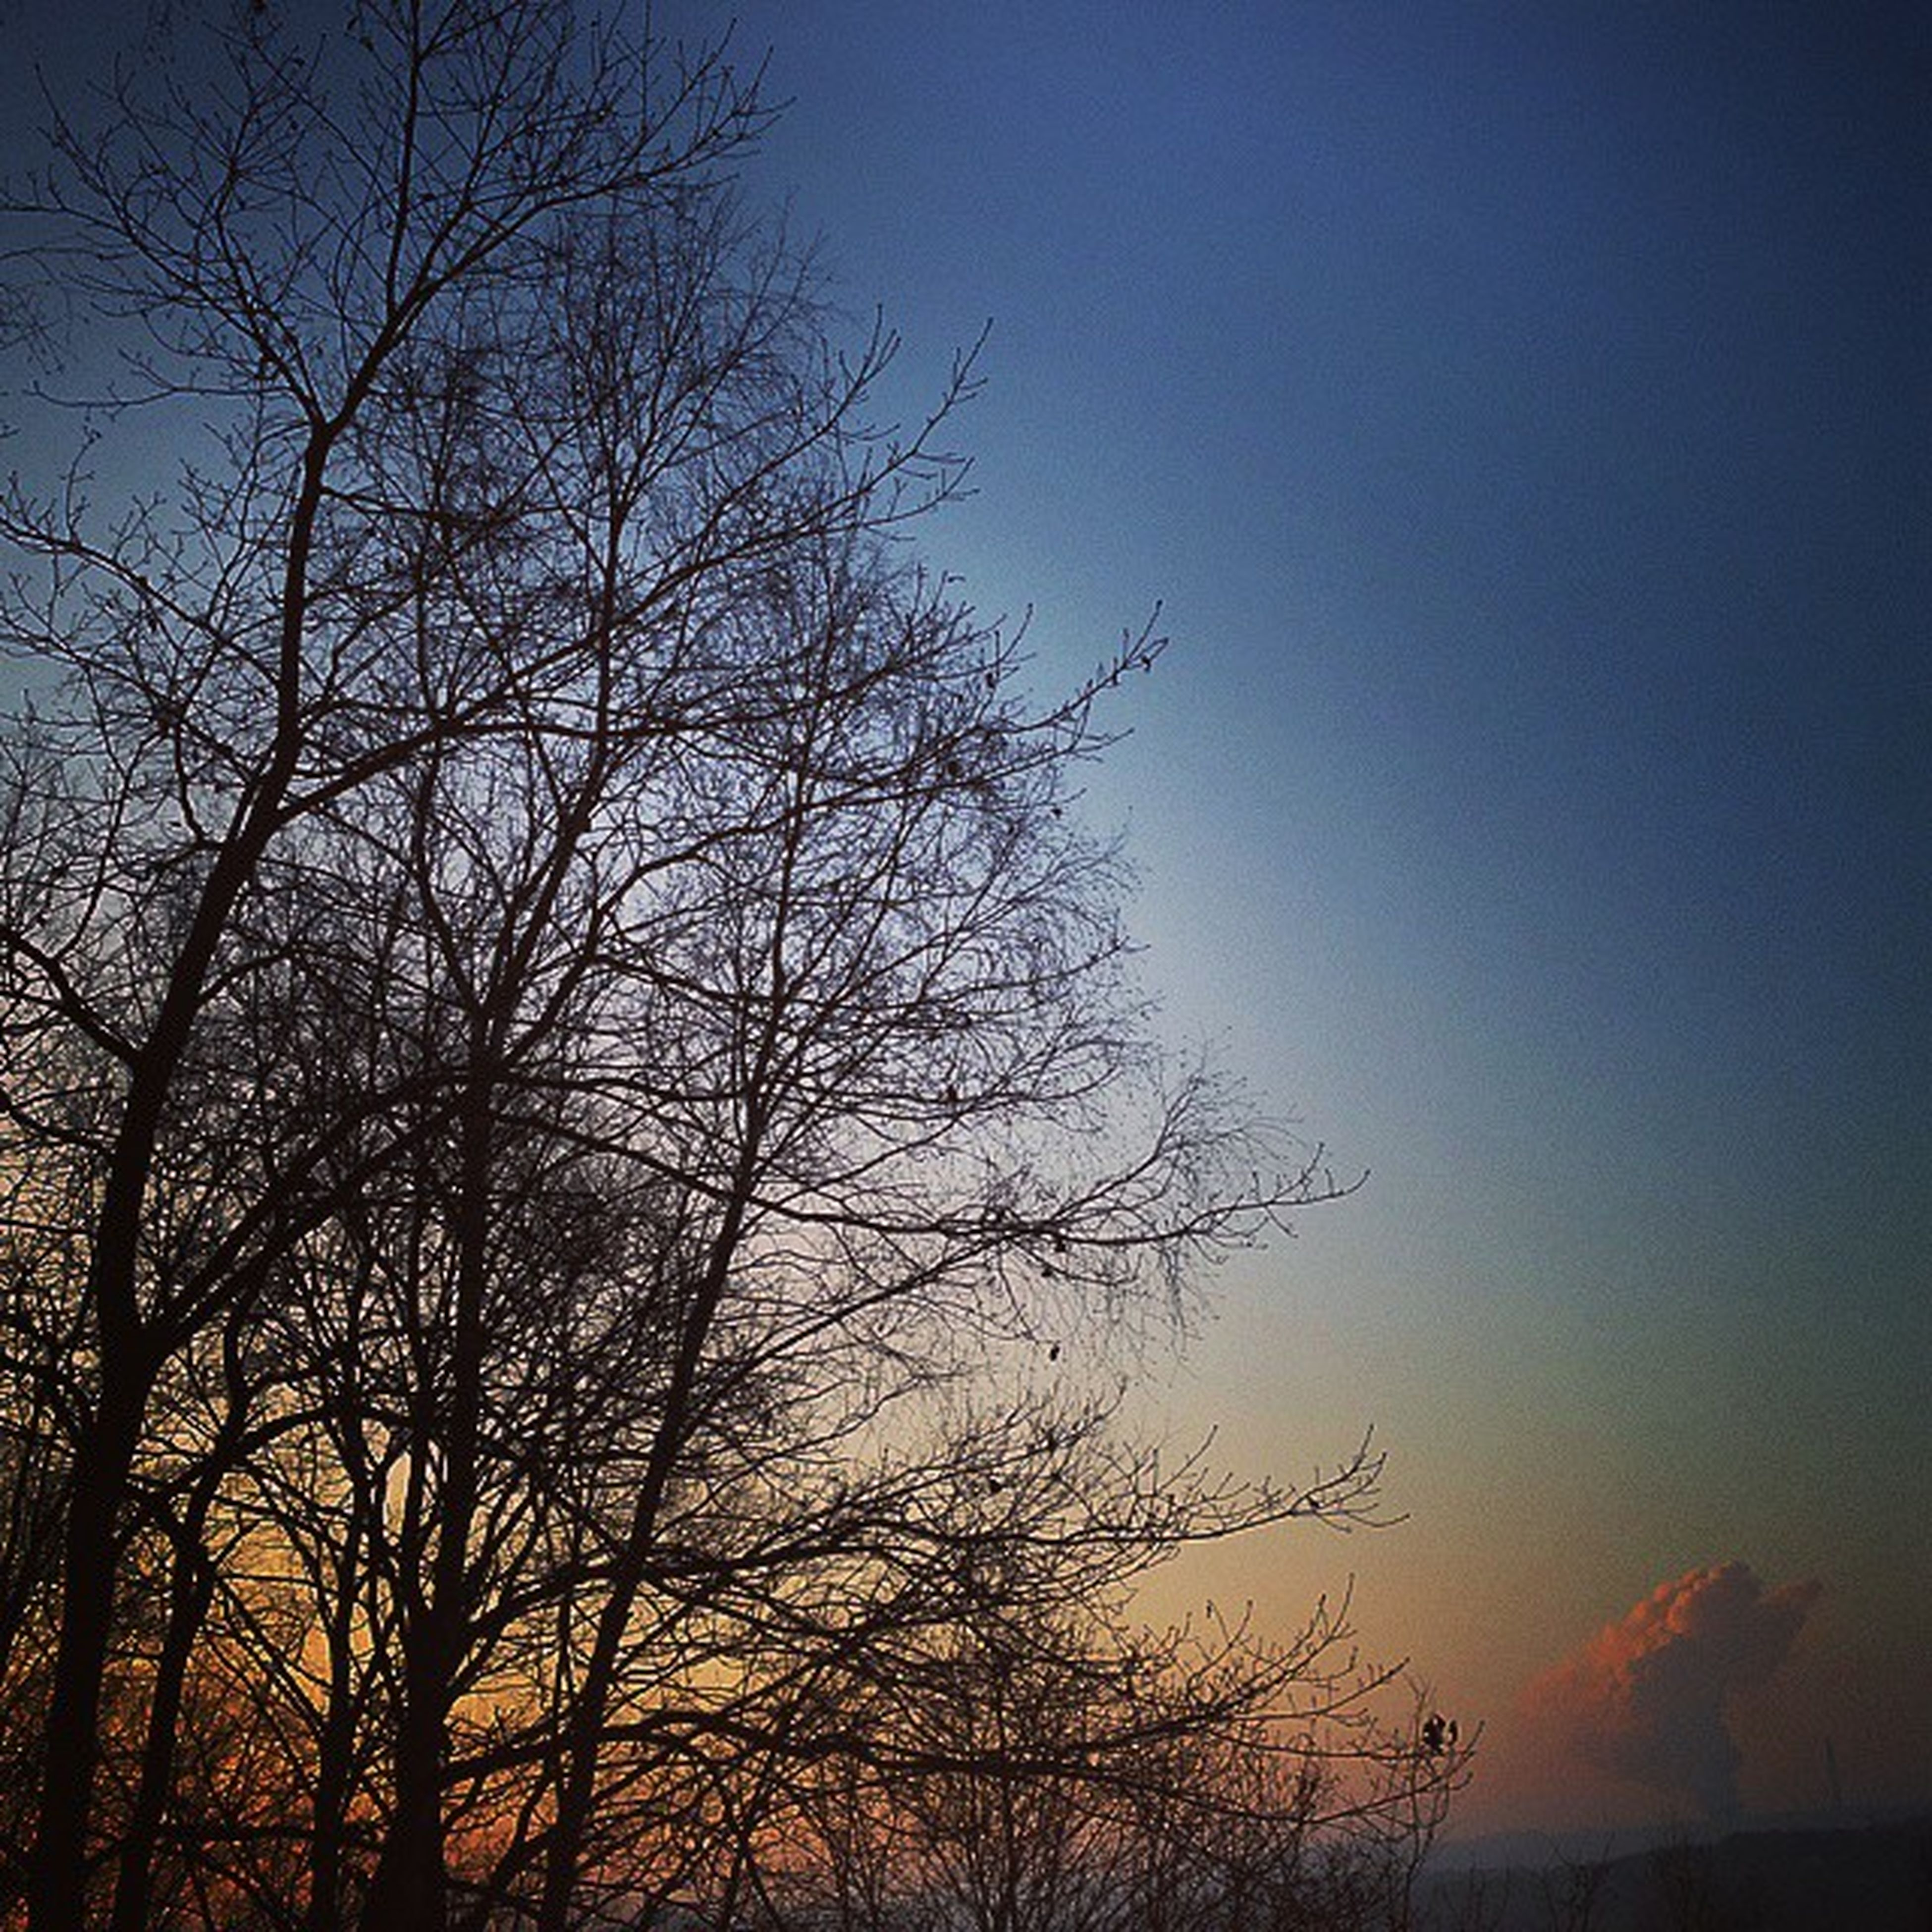 bare tree, tree, silhouette, branch, tranquility, sunset, low angle view, beauty in nature, scenics, tranquil scene, sky, nature, clear sky, dusk, idyllic, outdoors, no people, growth, non-urban scene, blue